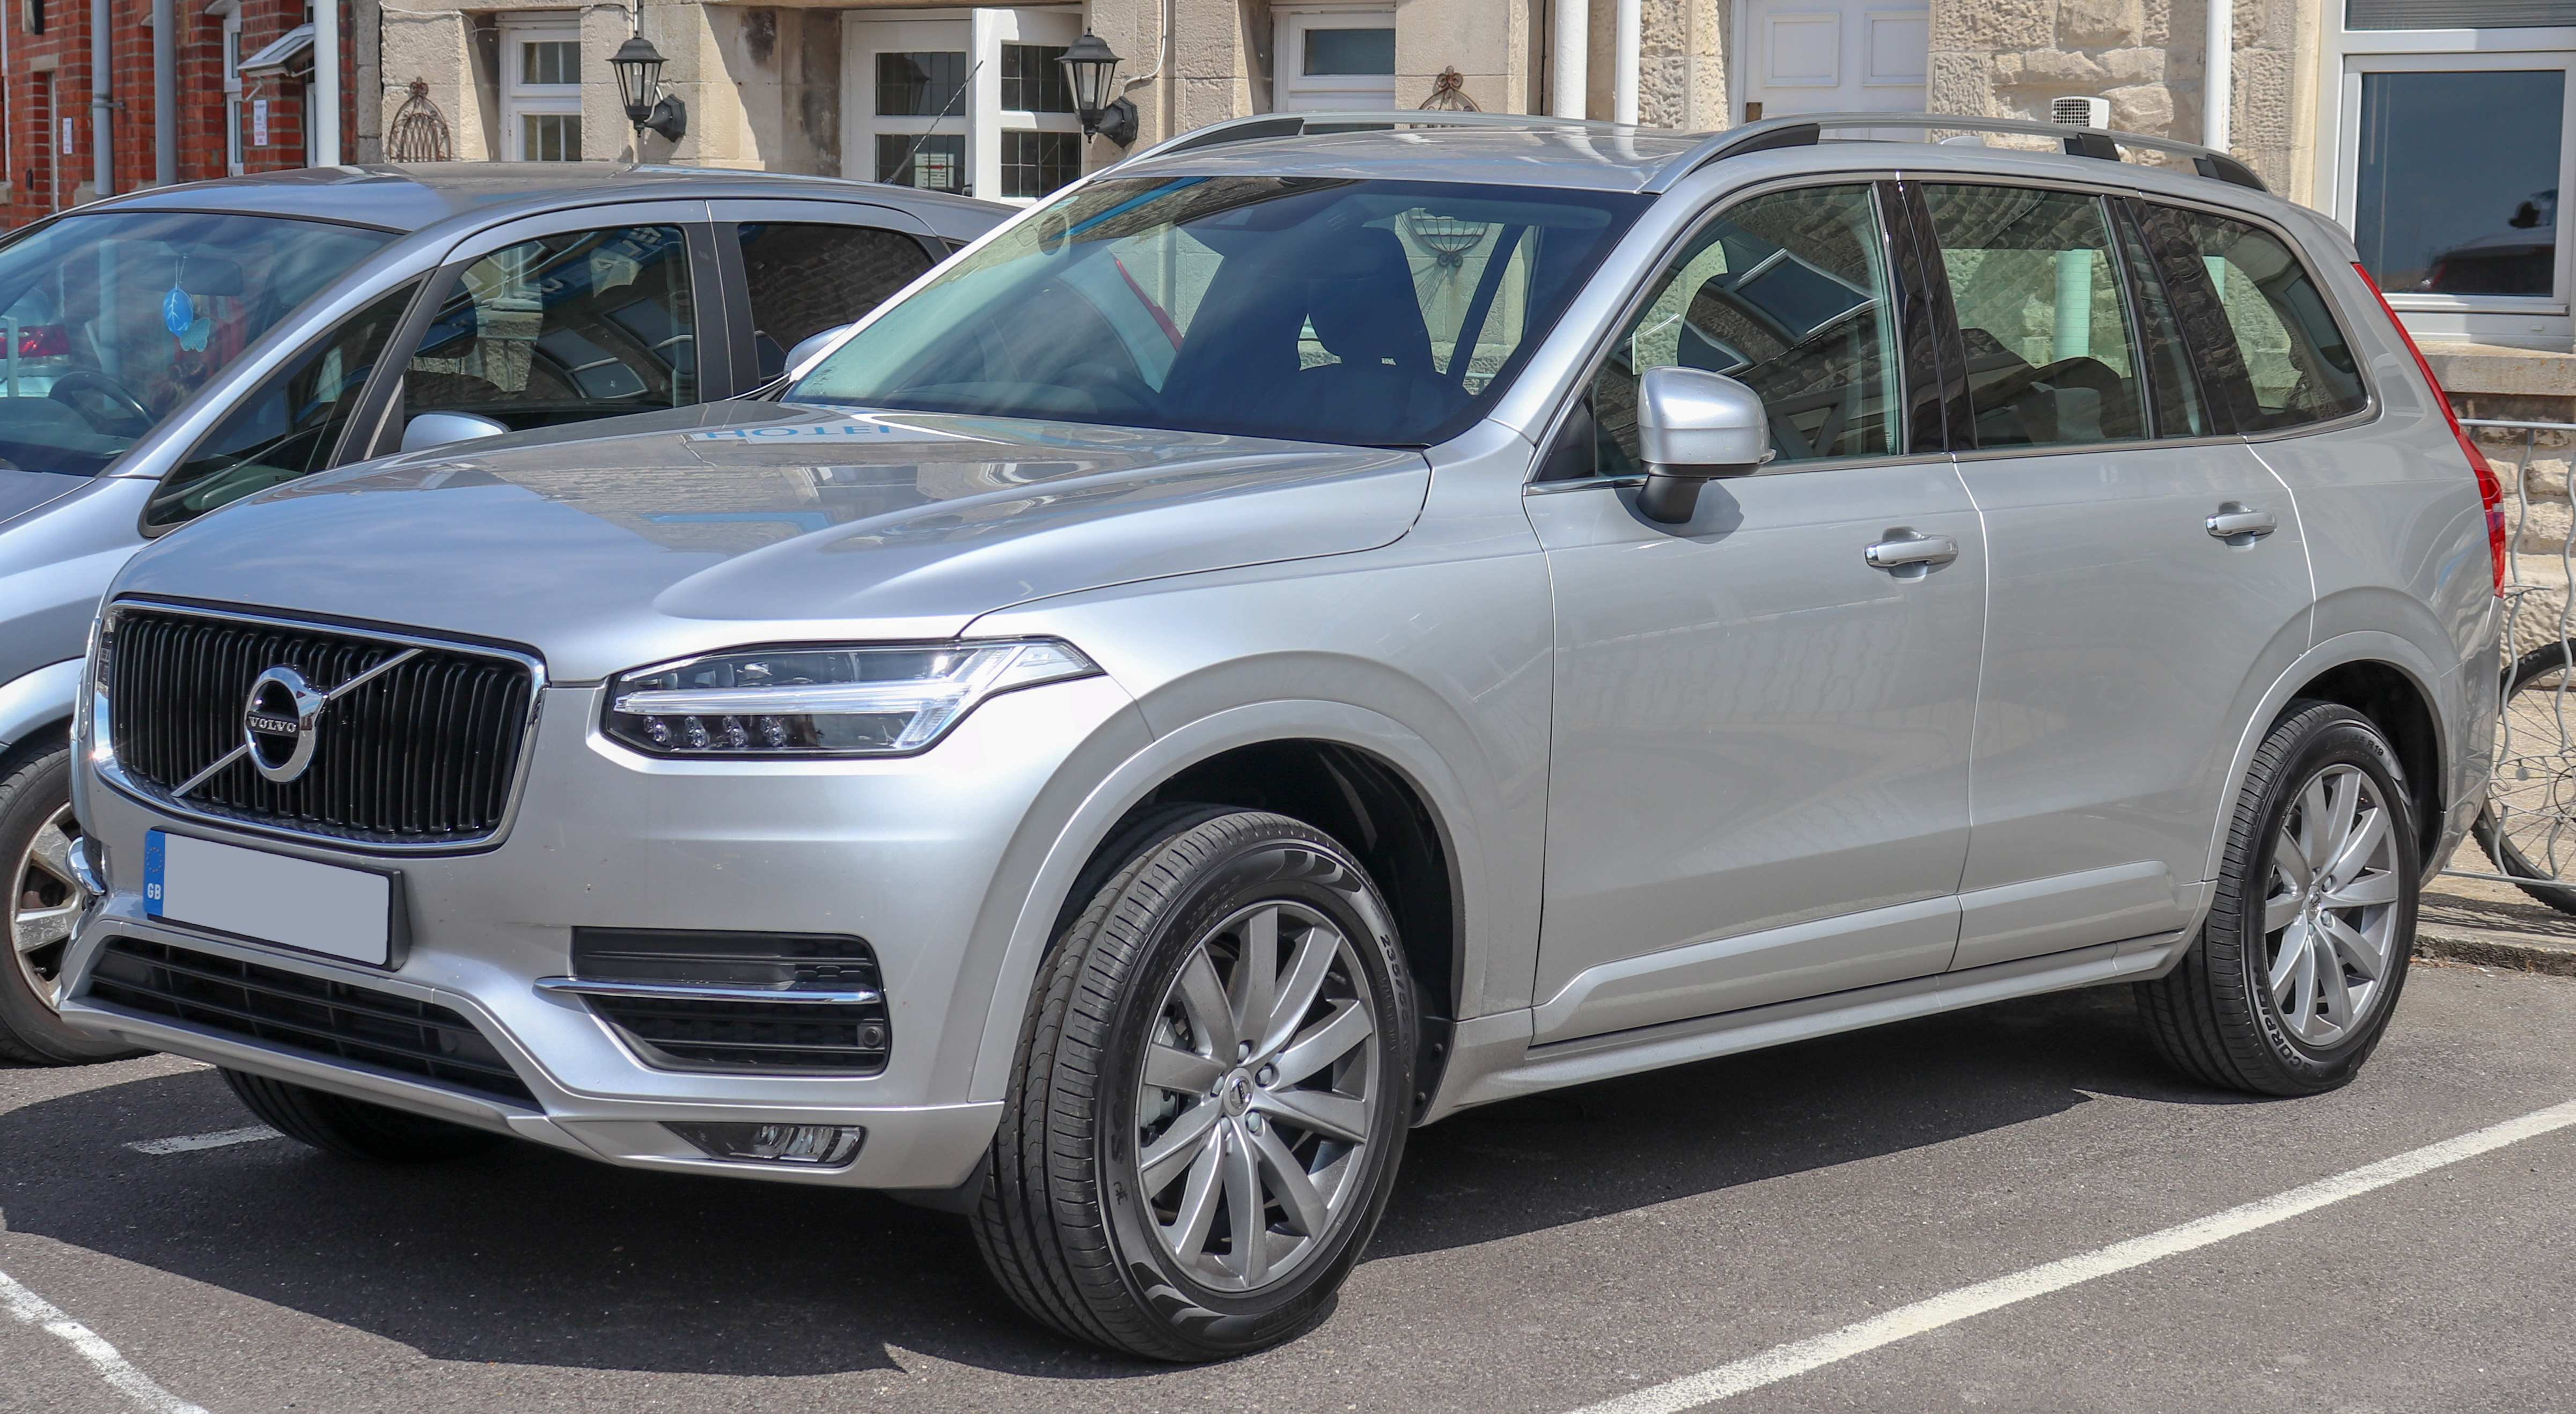 88 Best Review Volvo Xc90 Model Year 2020 Picture by Volvo Xc90 Model Year 2020